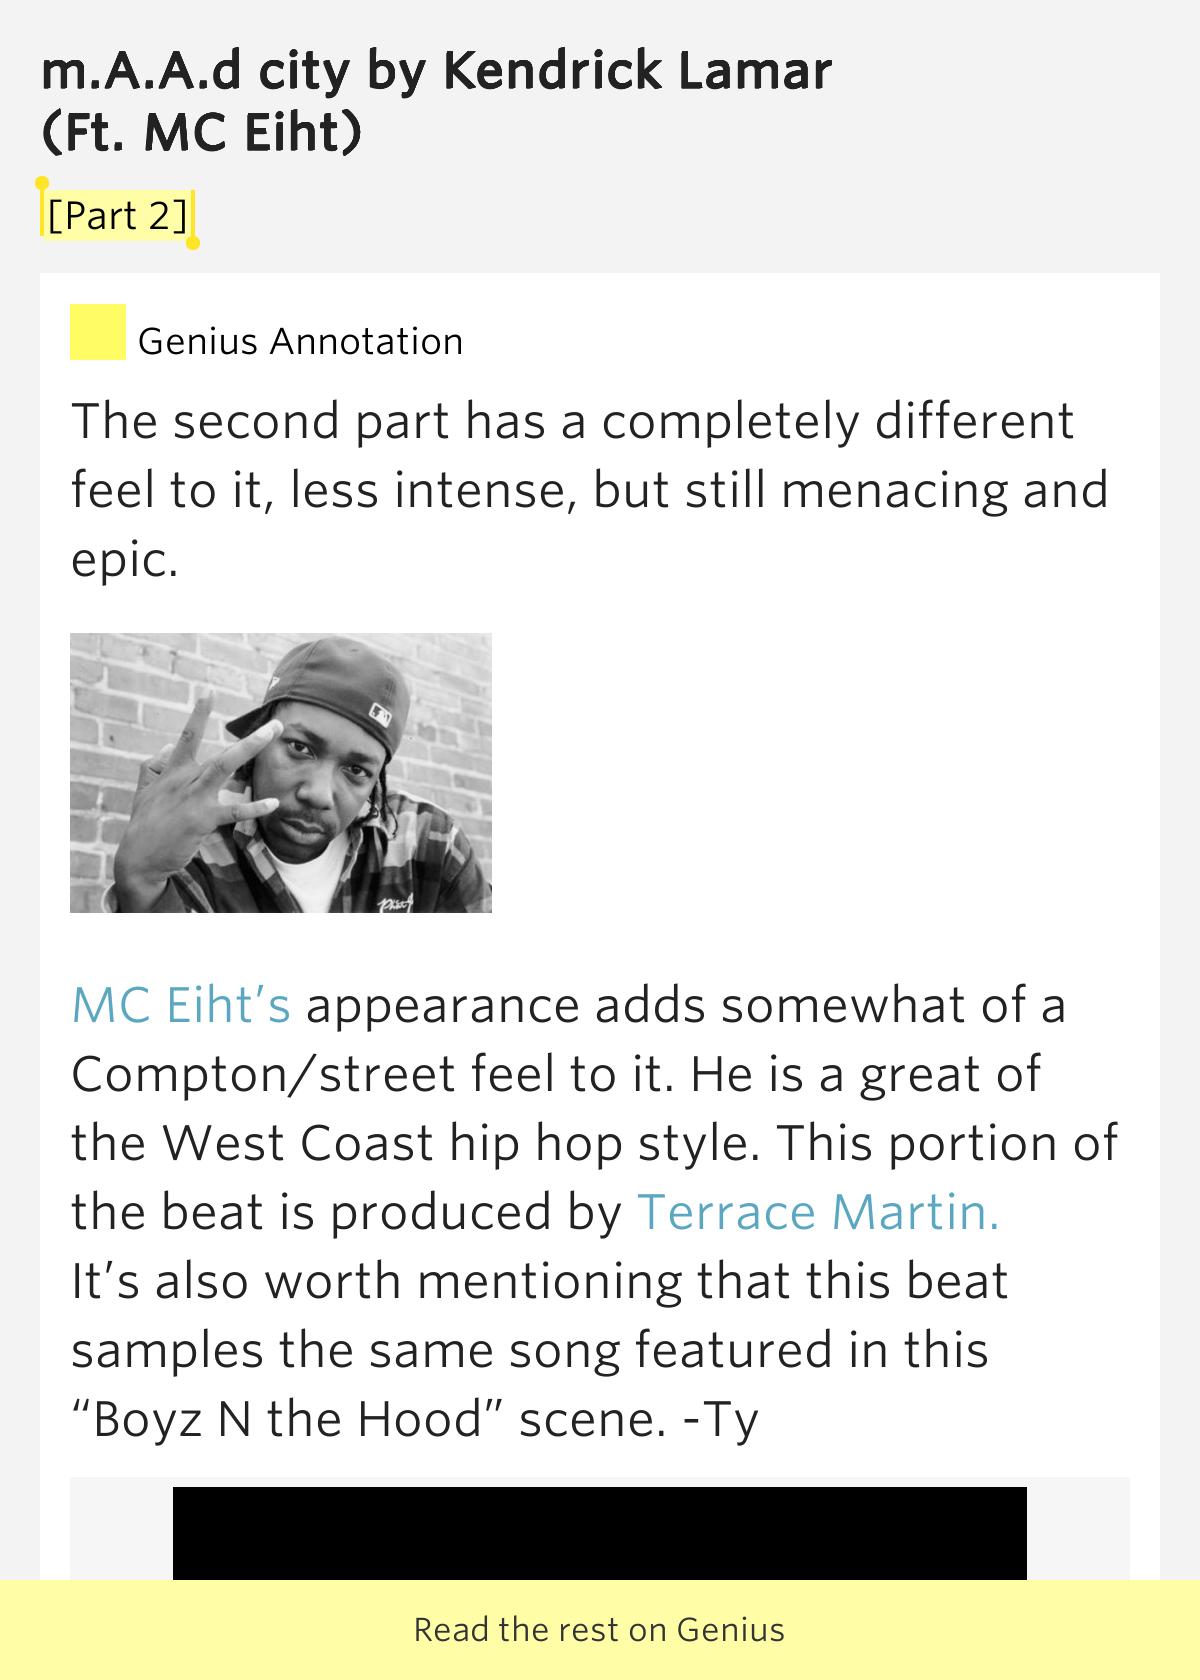 Maad city genius lyrics